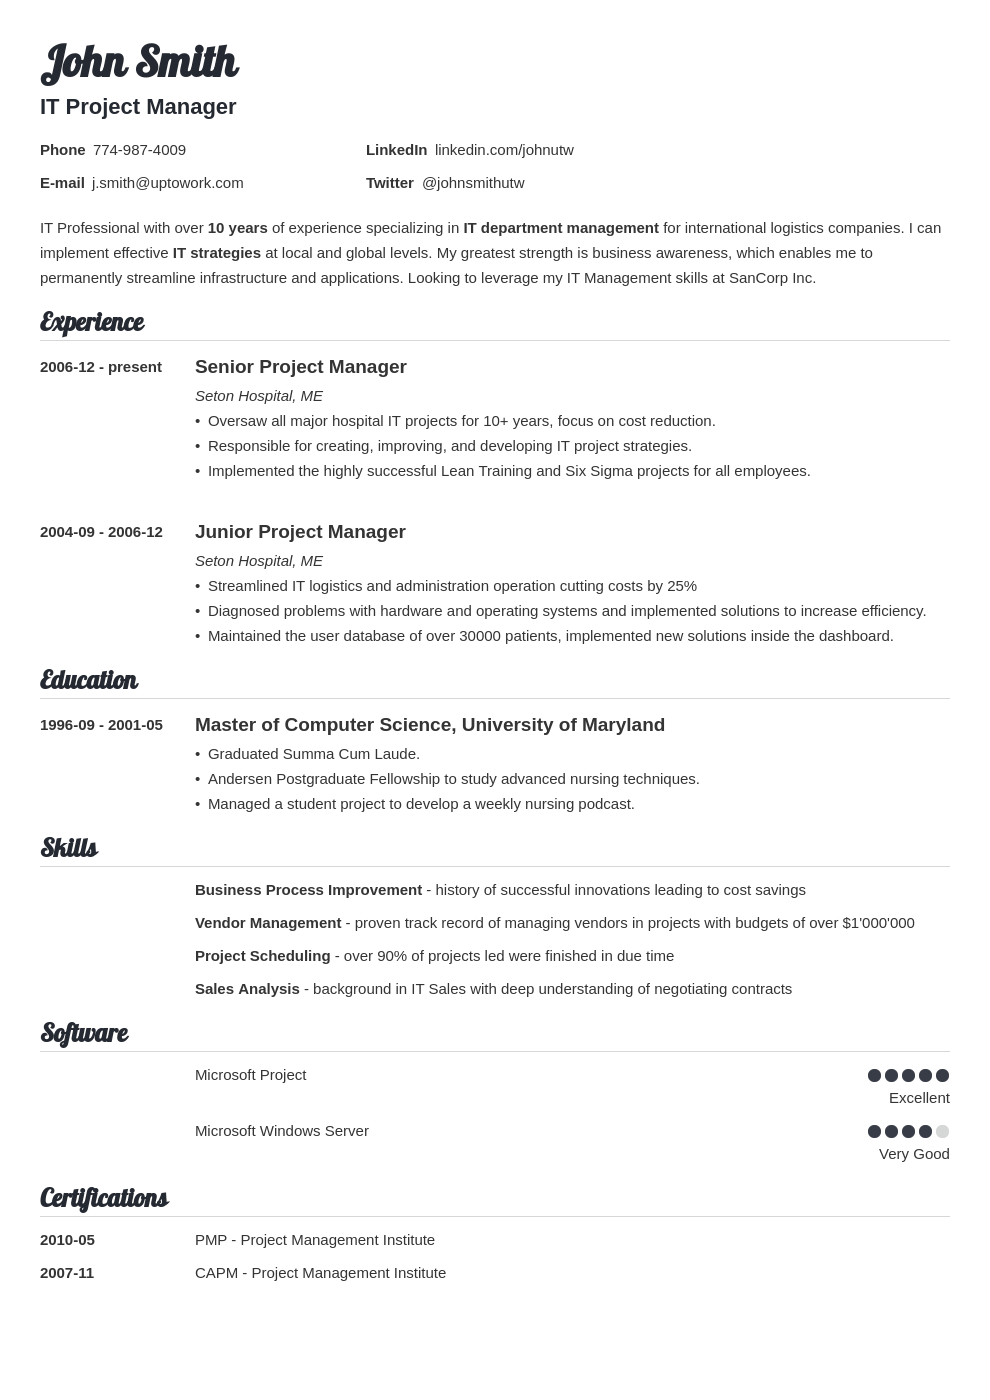 resume Resume Template Download 20 resume templates download create your in 5 minutes professional template valera